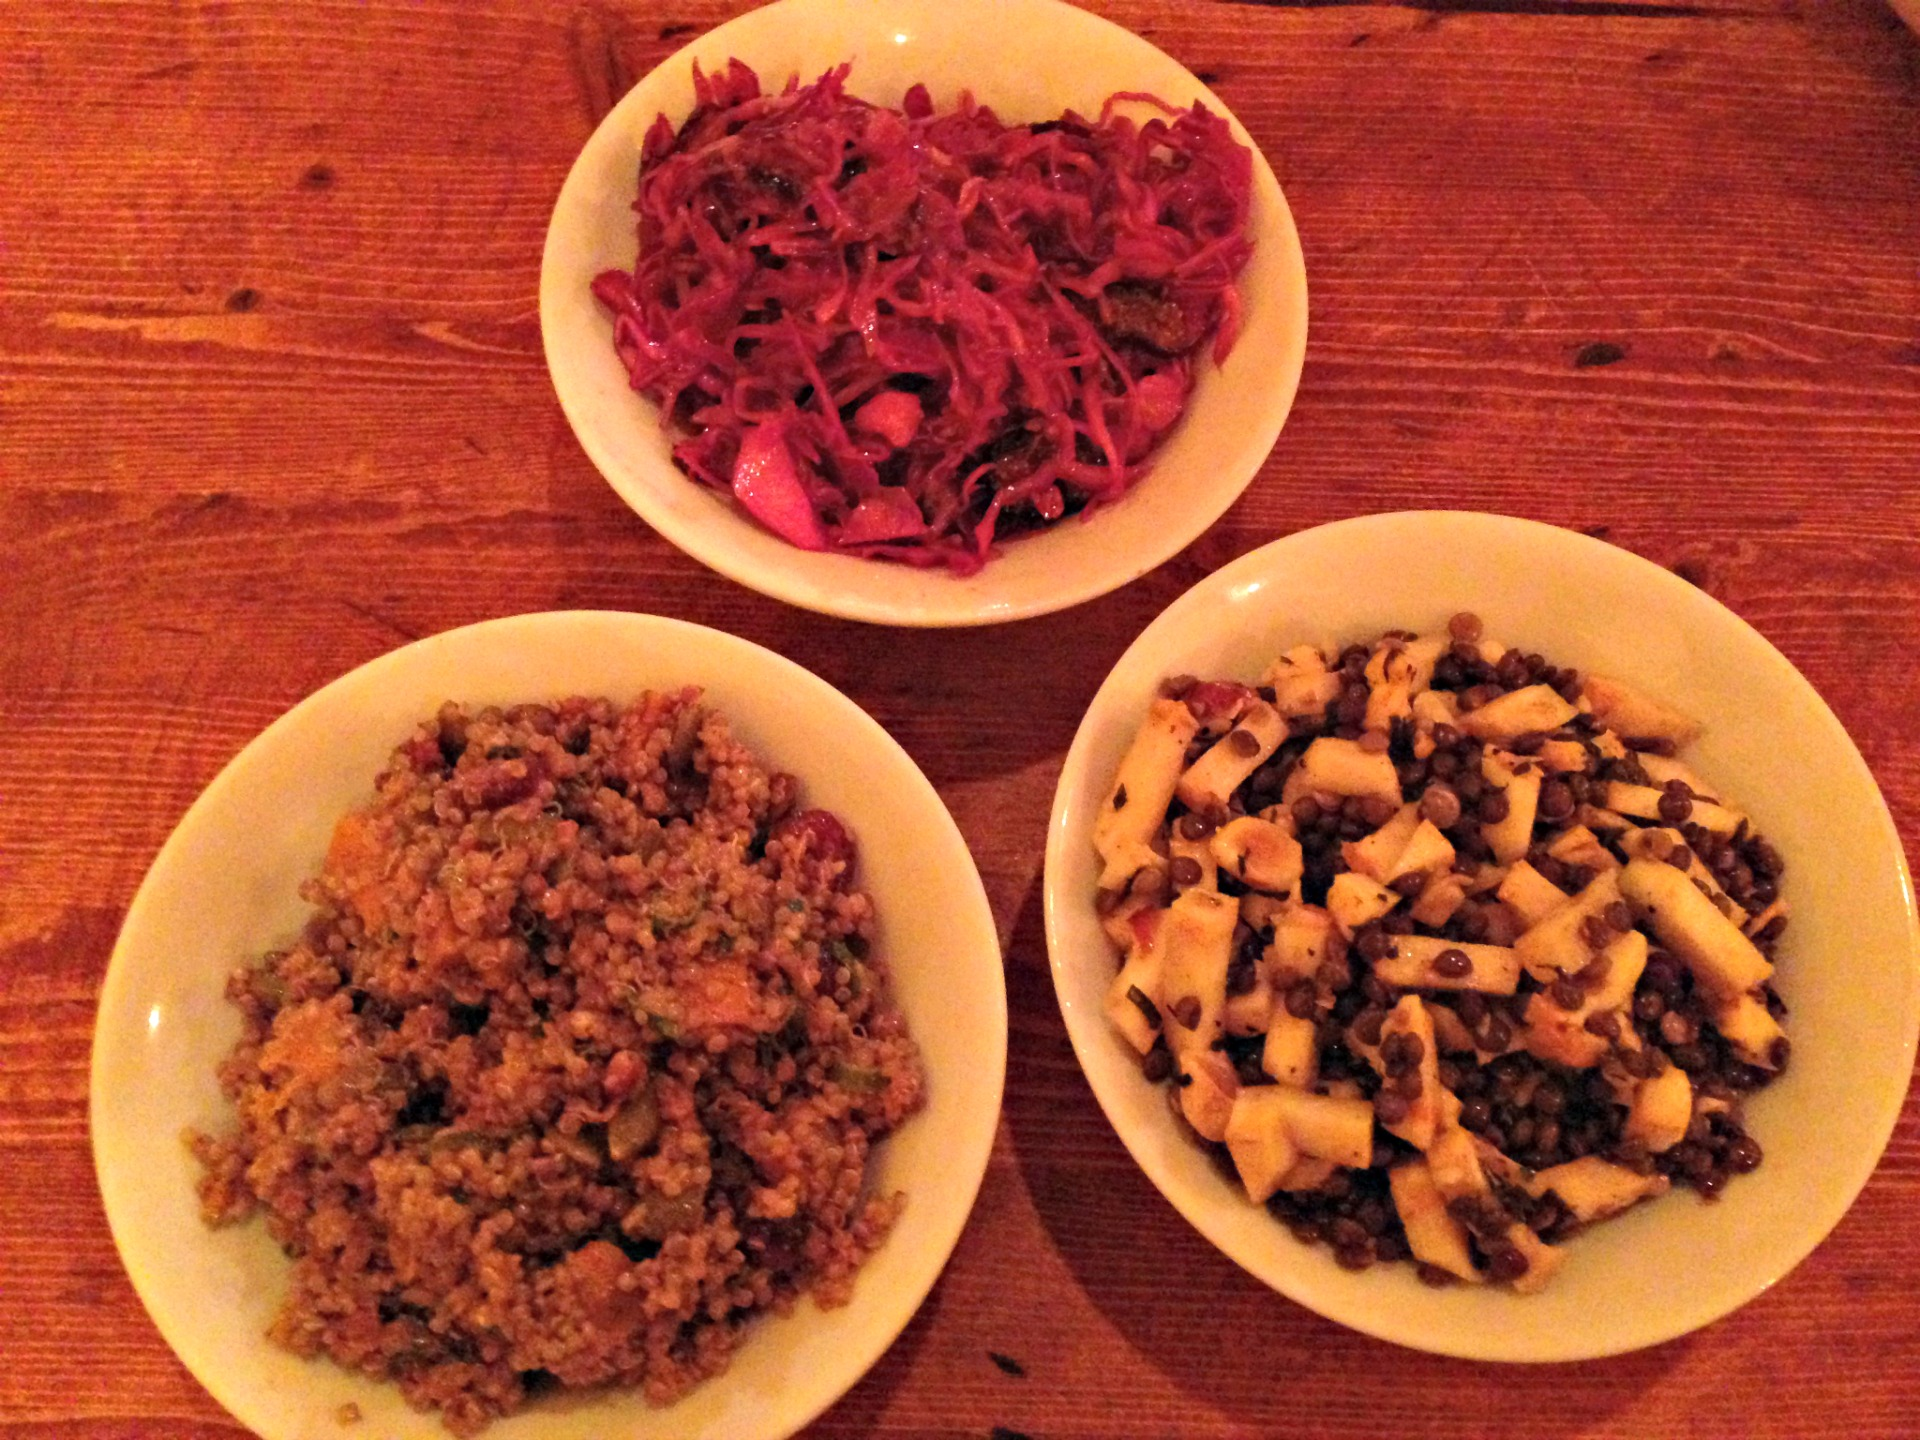 Salads at Ba Bite, clockwise from top: cabbage, lentil and celeriac, and butternut squash and quinoa.